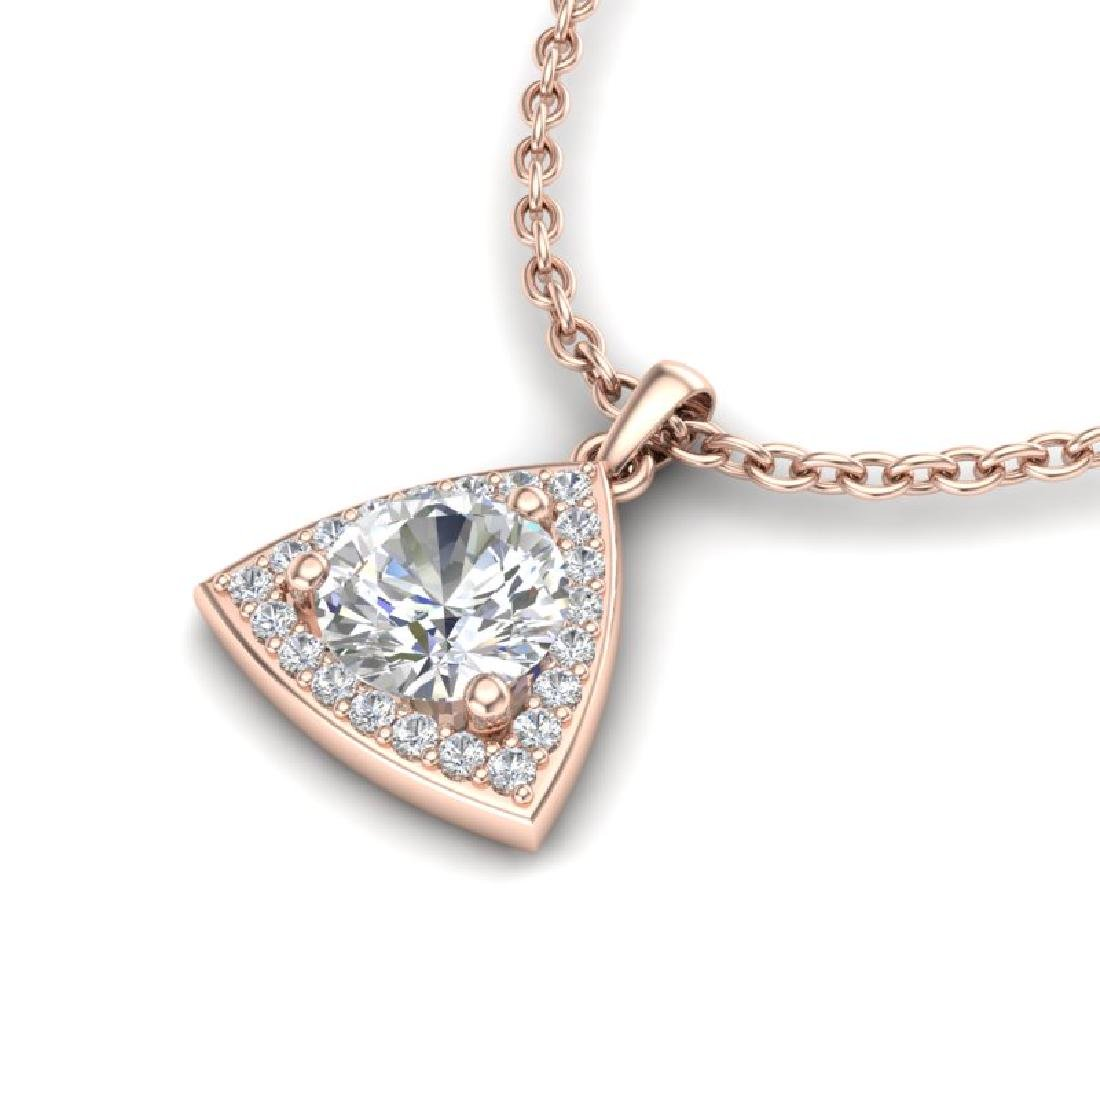 1.50 CTW VS/SI Diamond Necklace 14K Rose Gold - 2